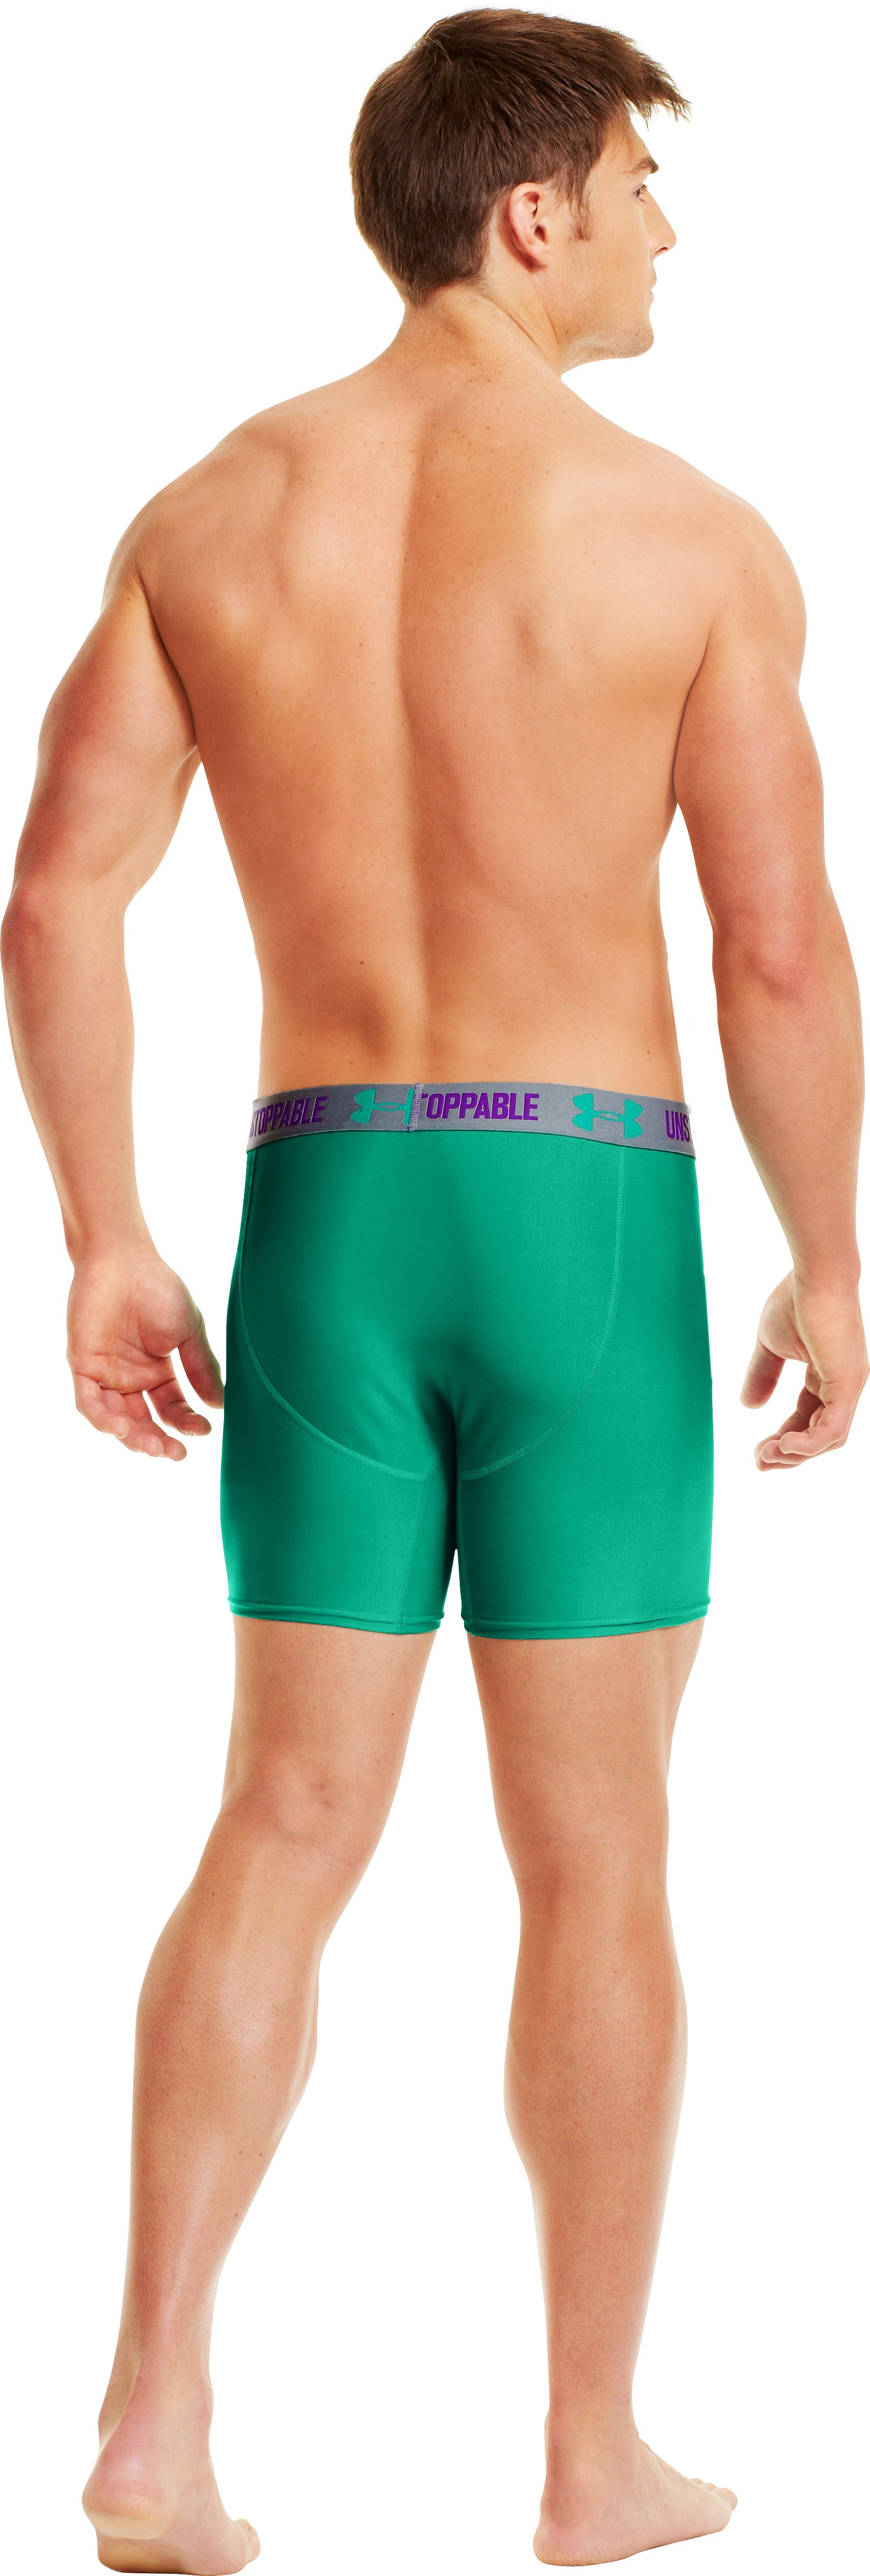 Men's Original Series Statement Boxerjock® Boxer Briefs, EMERALD LAKE, Back